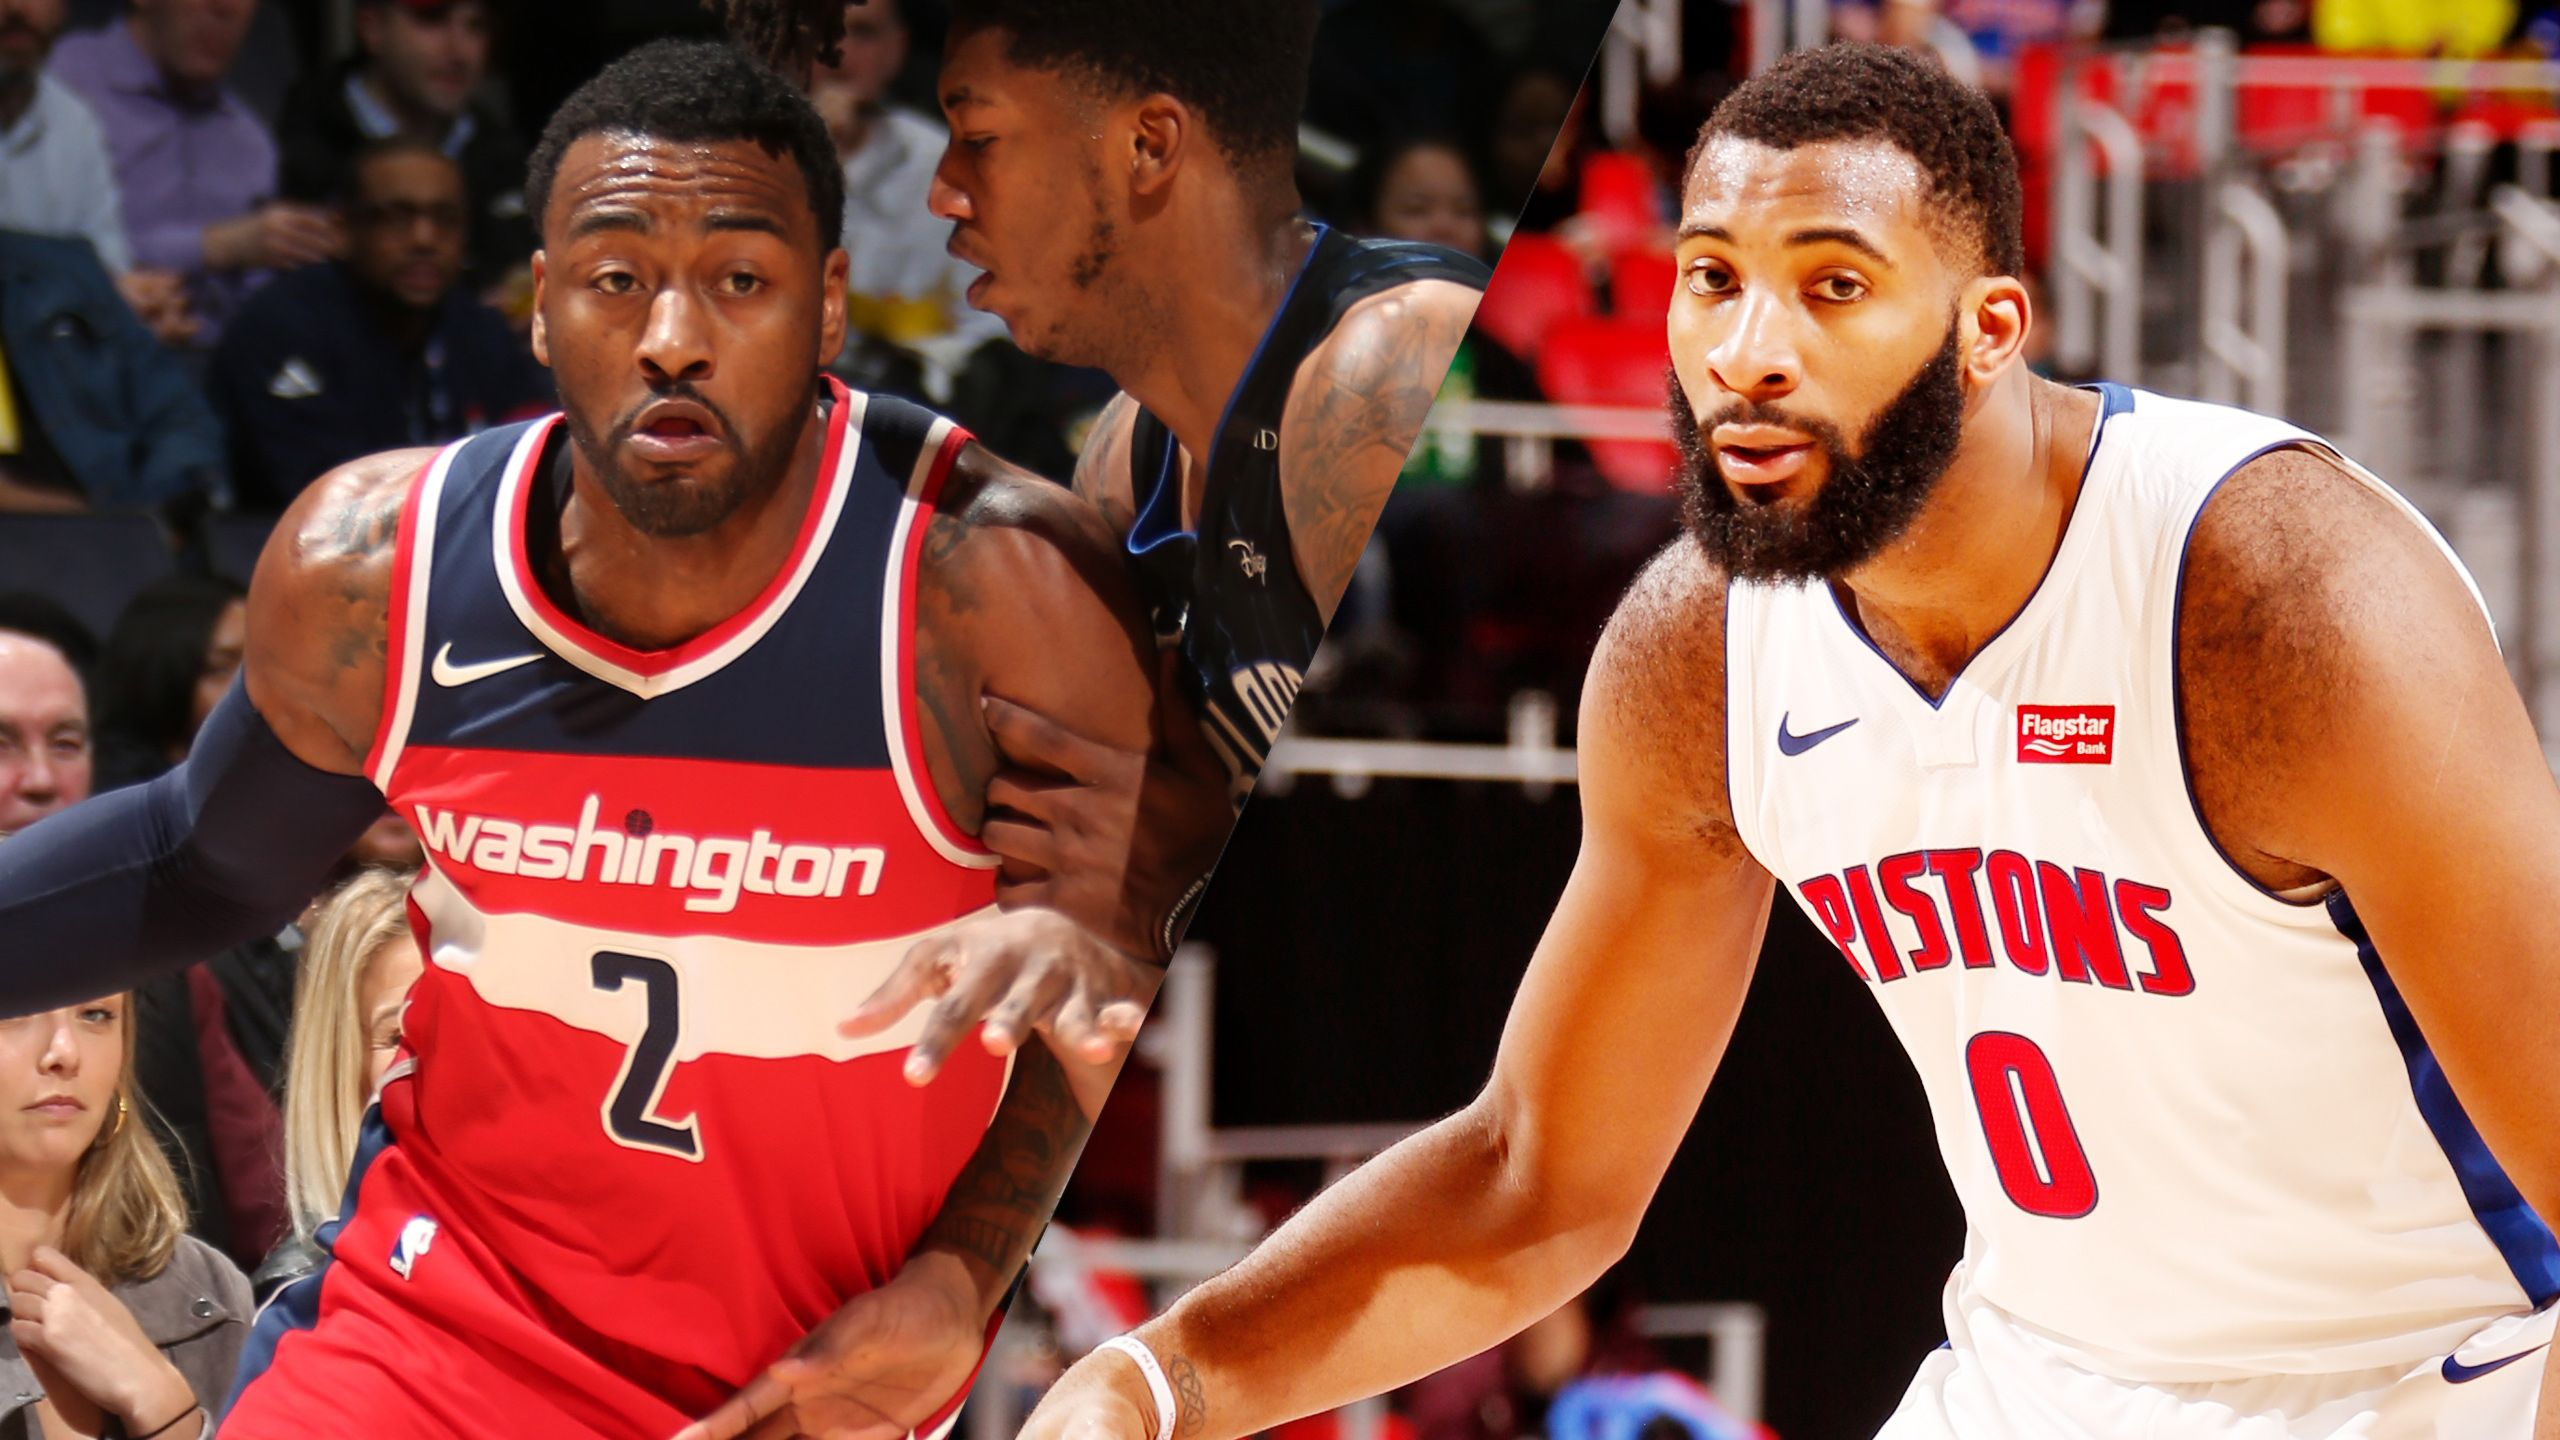 Washington Wizards vs. Detroit Pistons